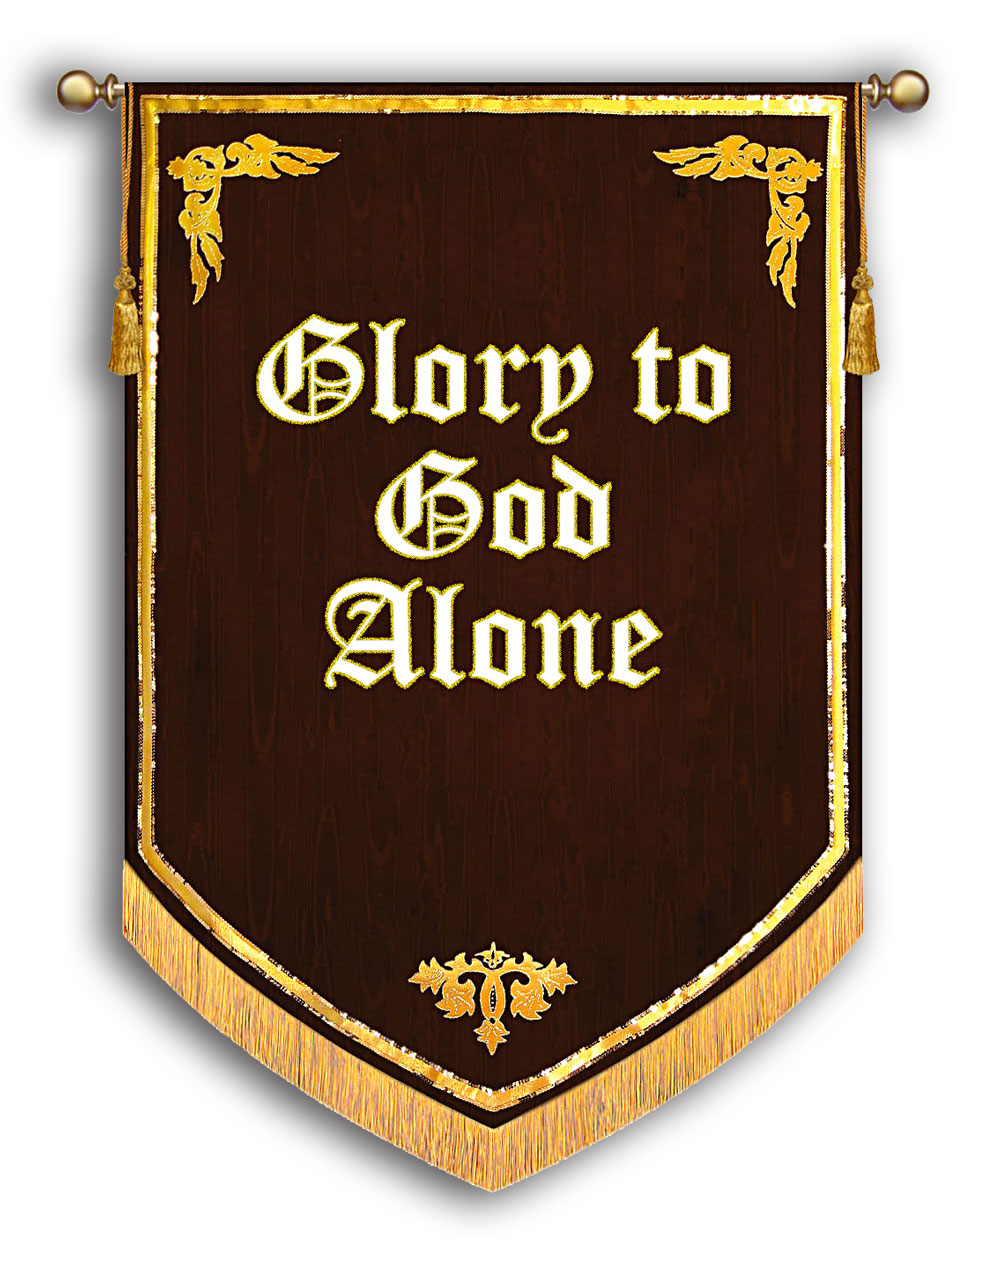 Glory to God ALone Banner - Reformation 500